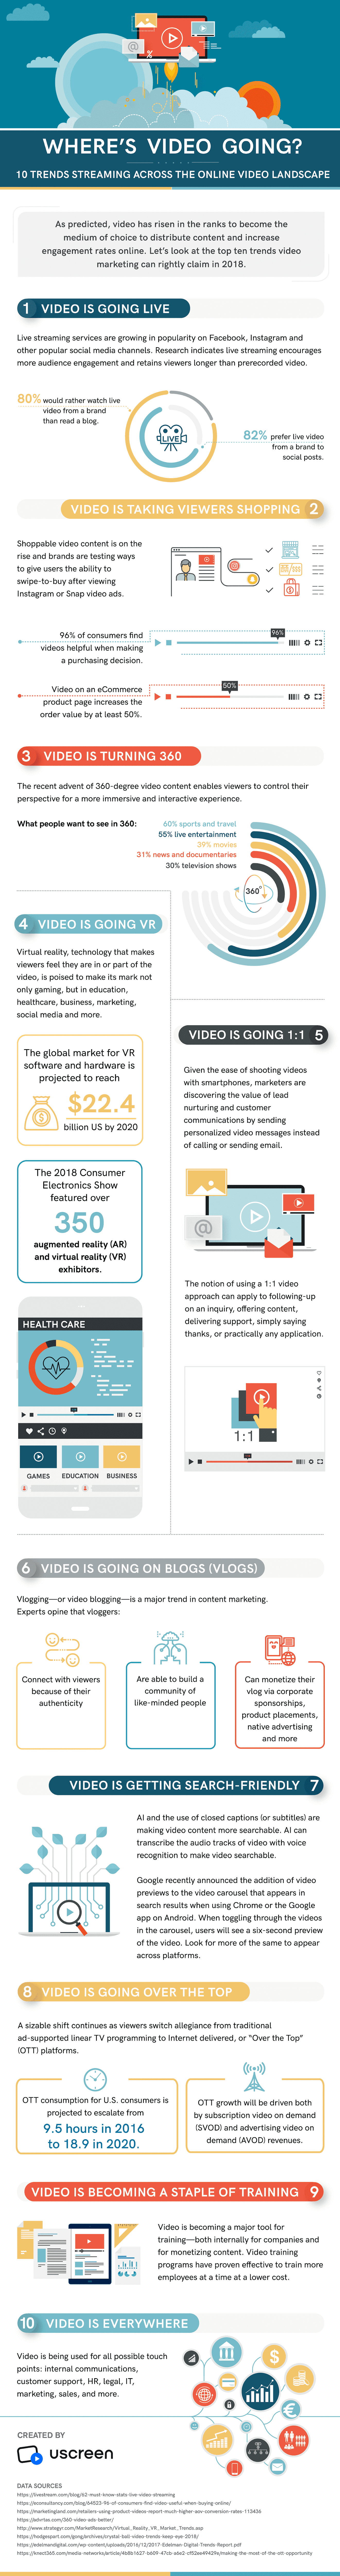 wheres_video_going_infographic